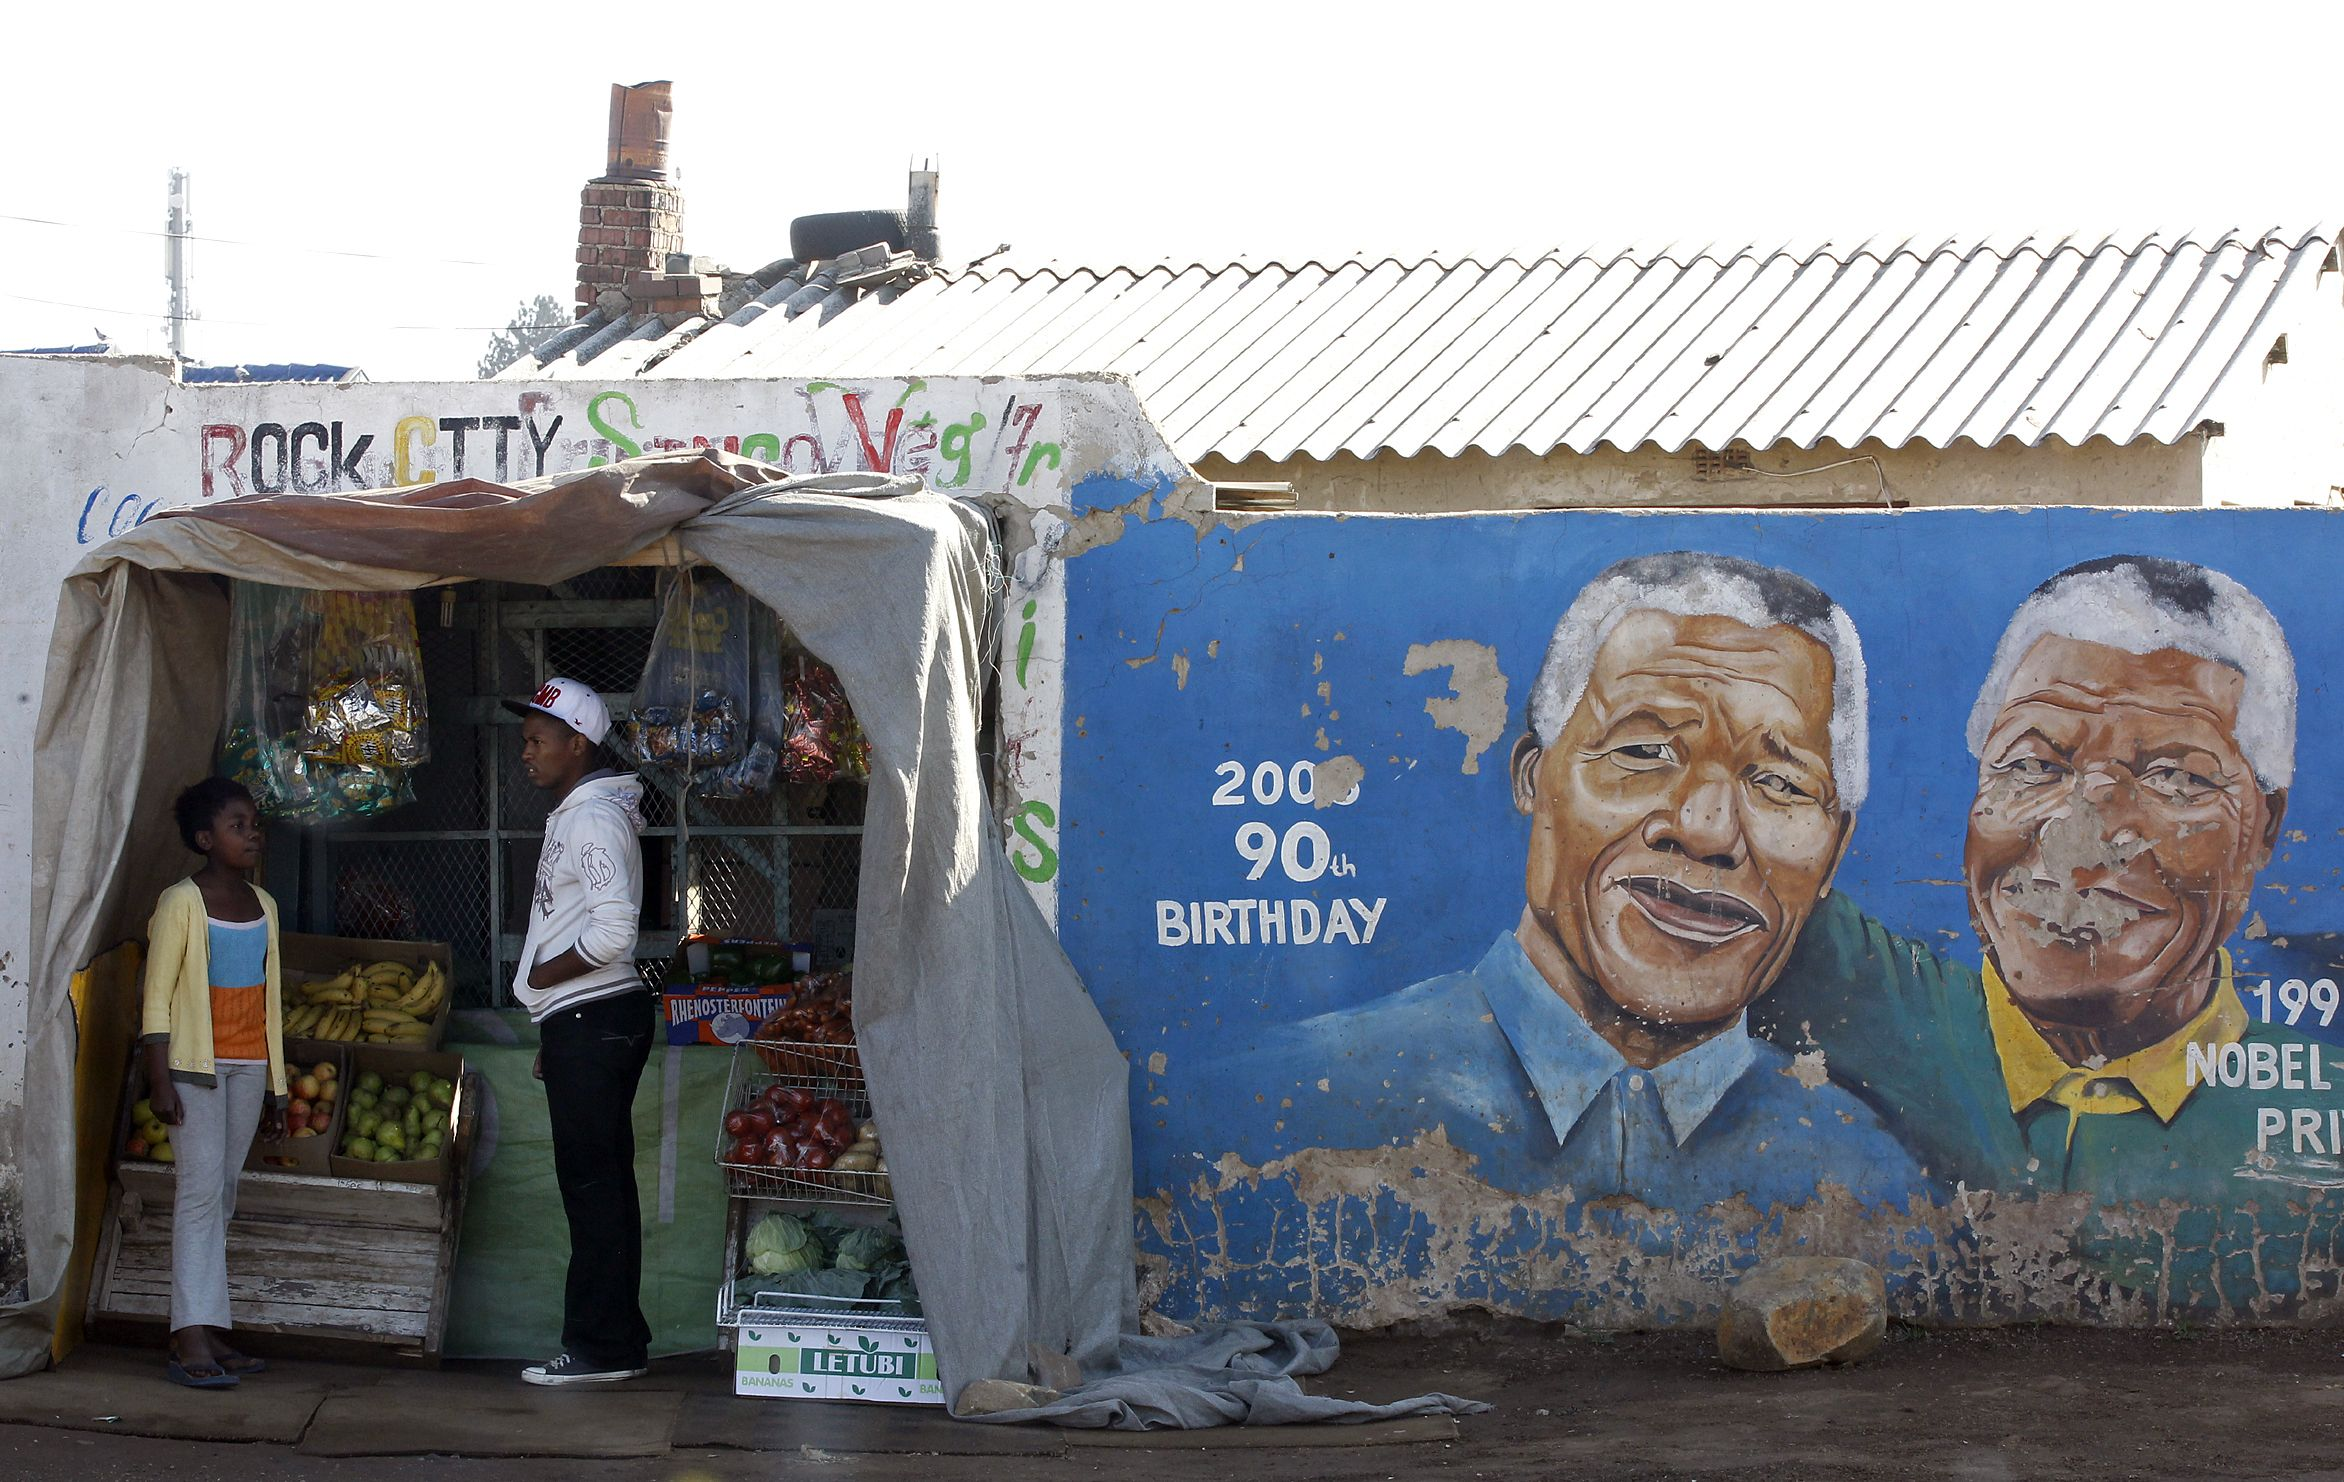 09_08_SouthAfrica_01